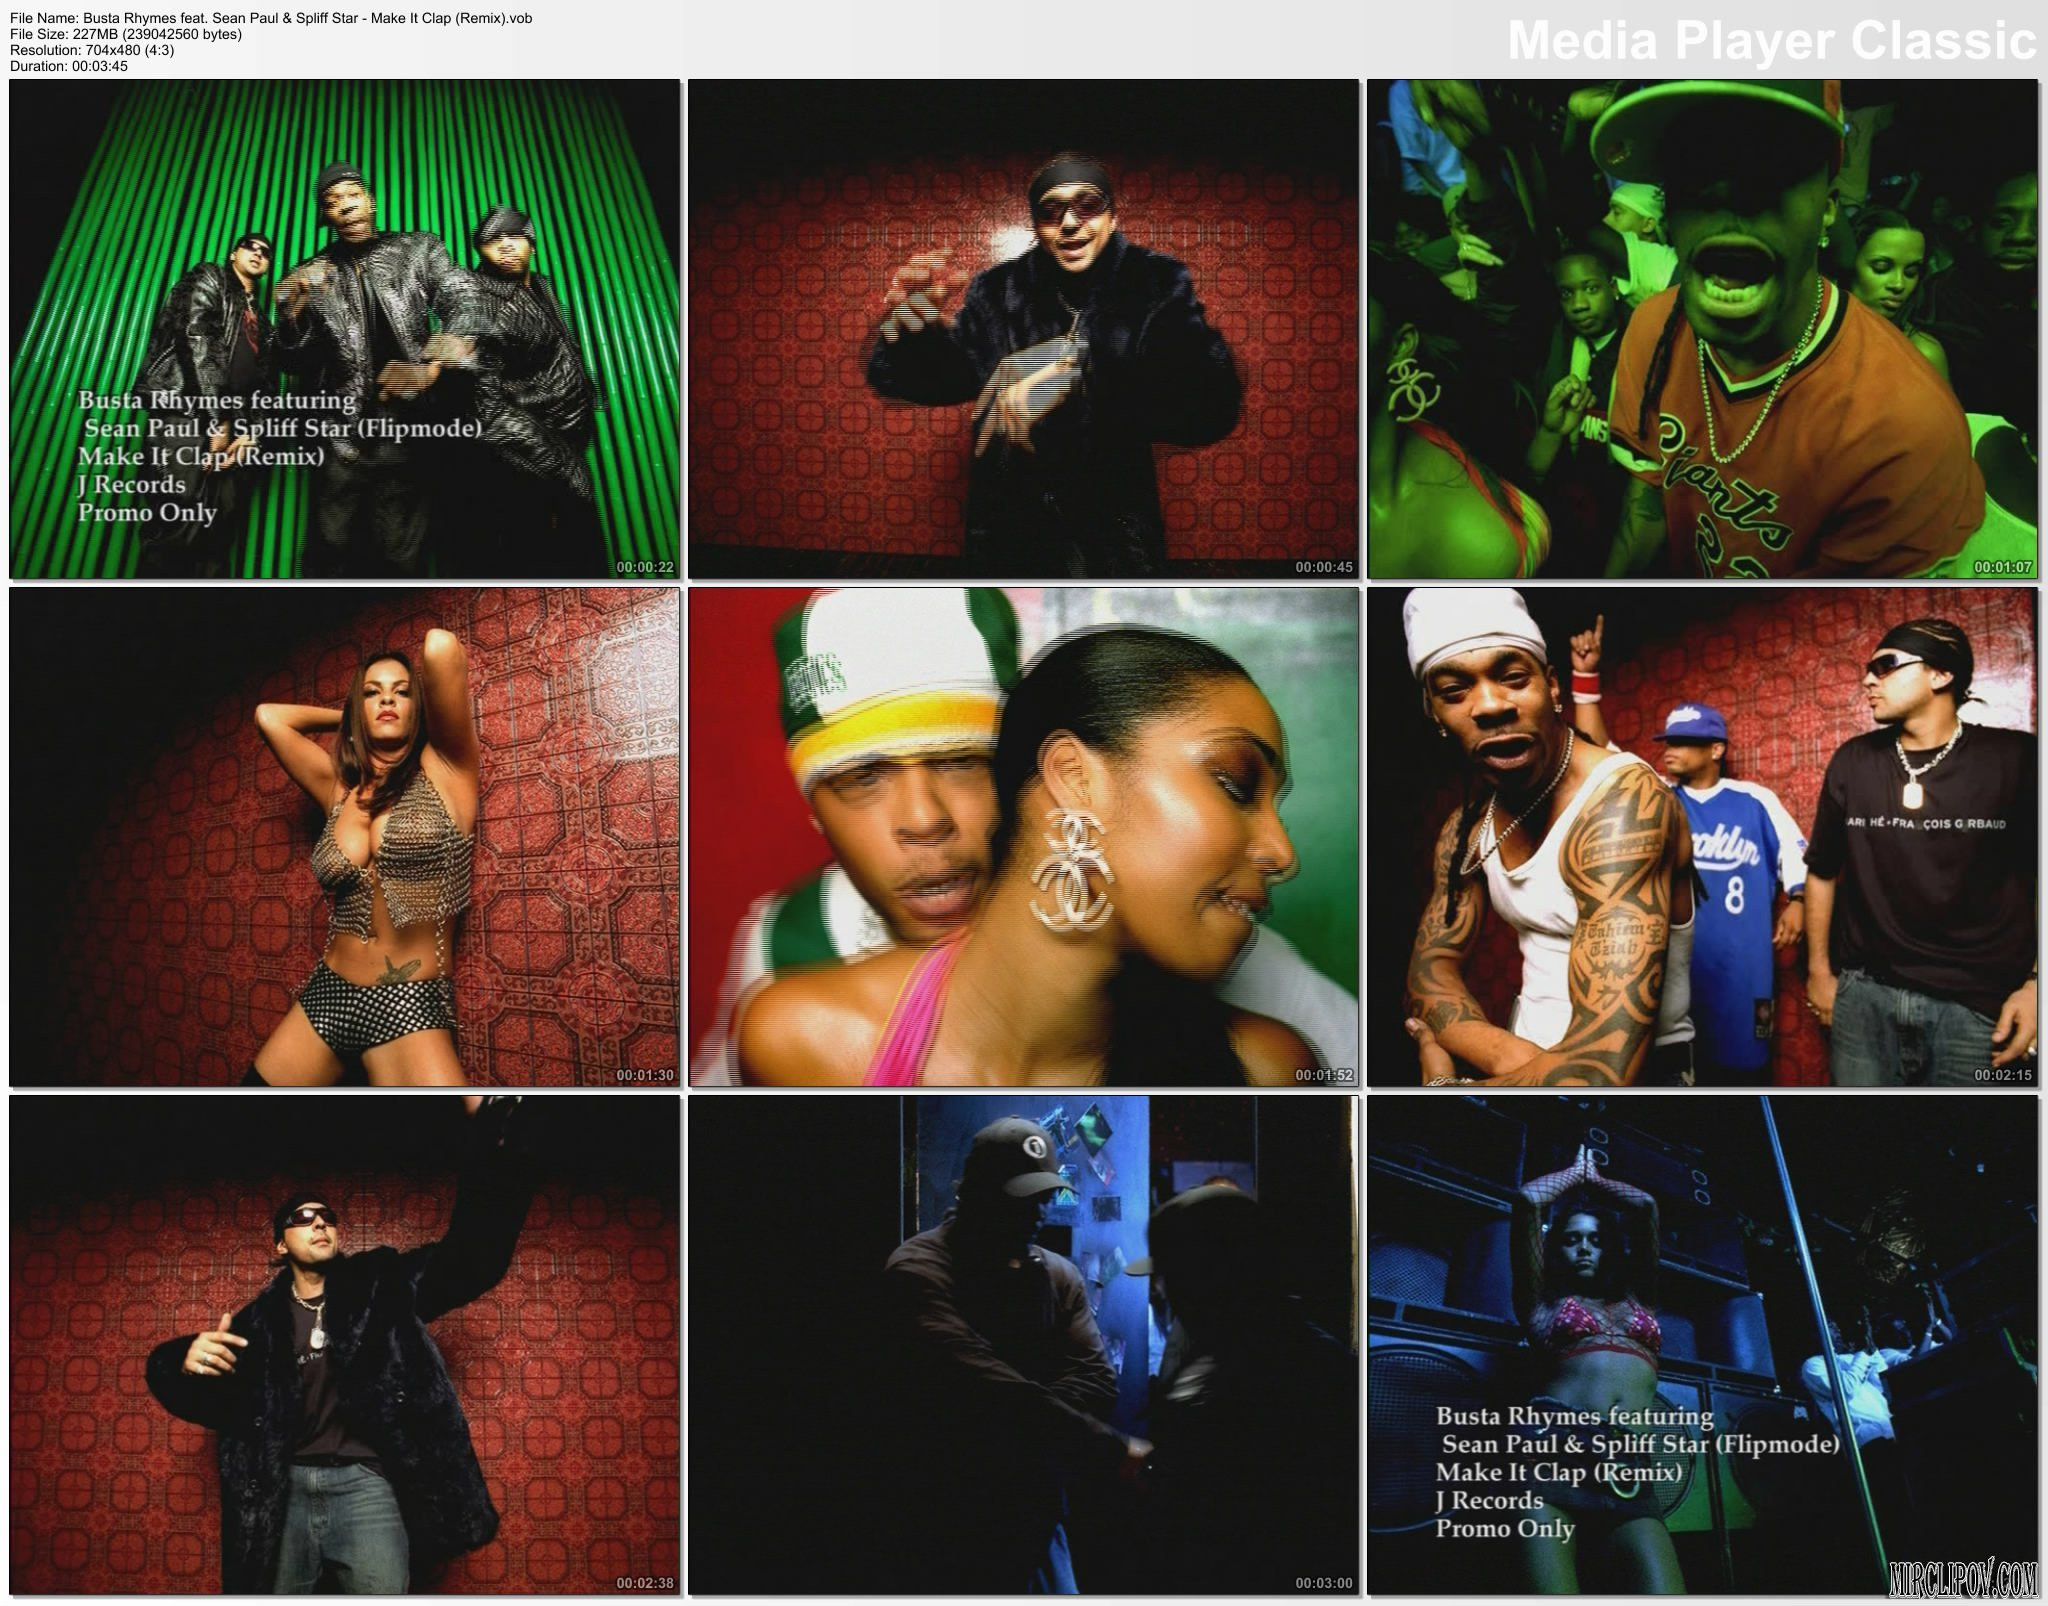 Busta Rhymes Feat. Spliff Star & Sean Paul - Make It Clap (Remix)